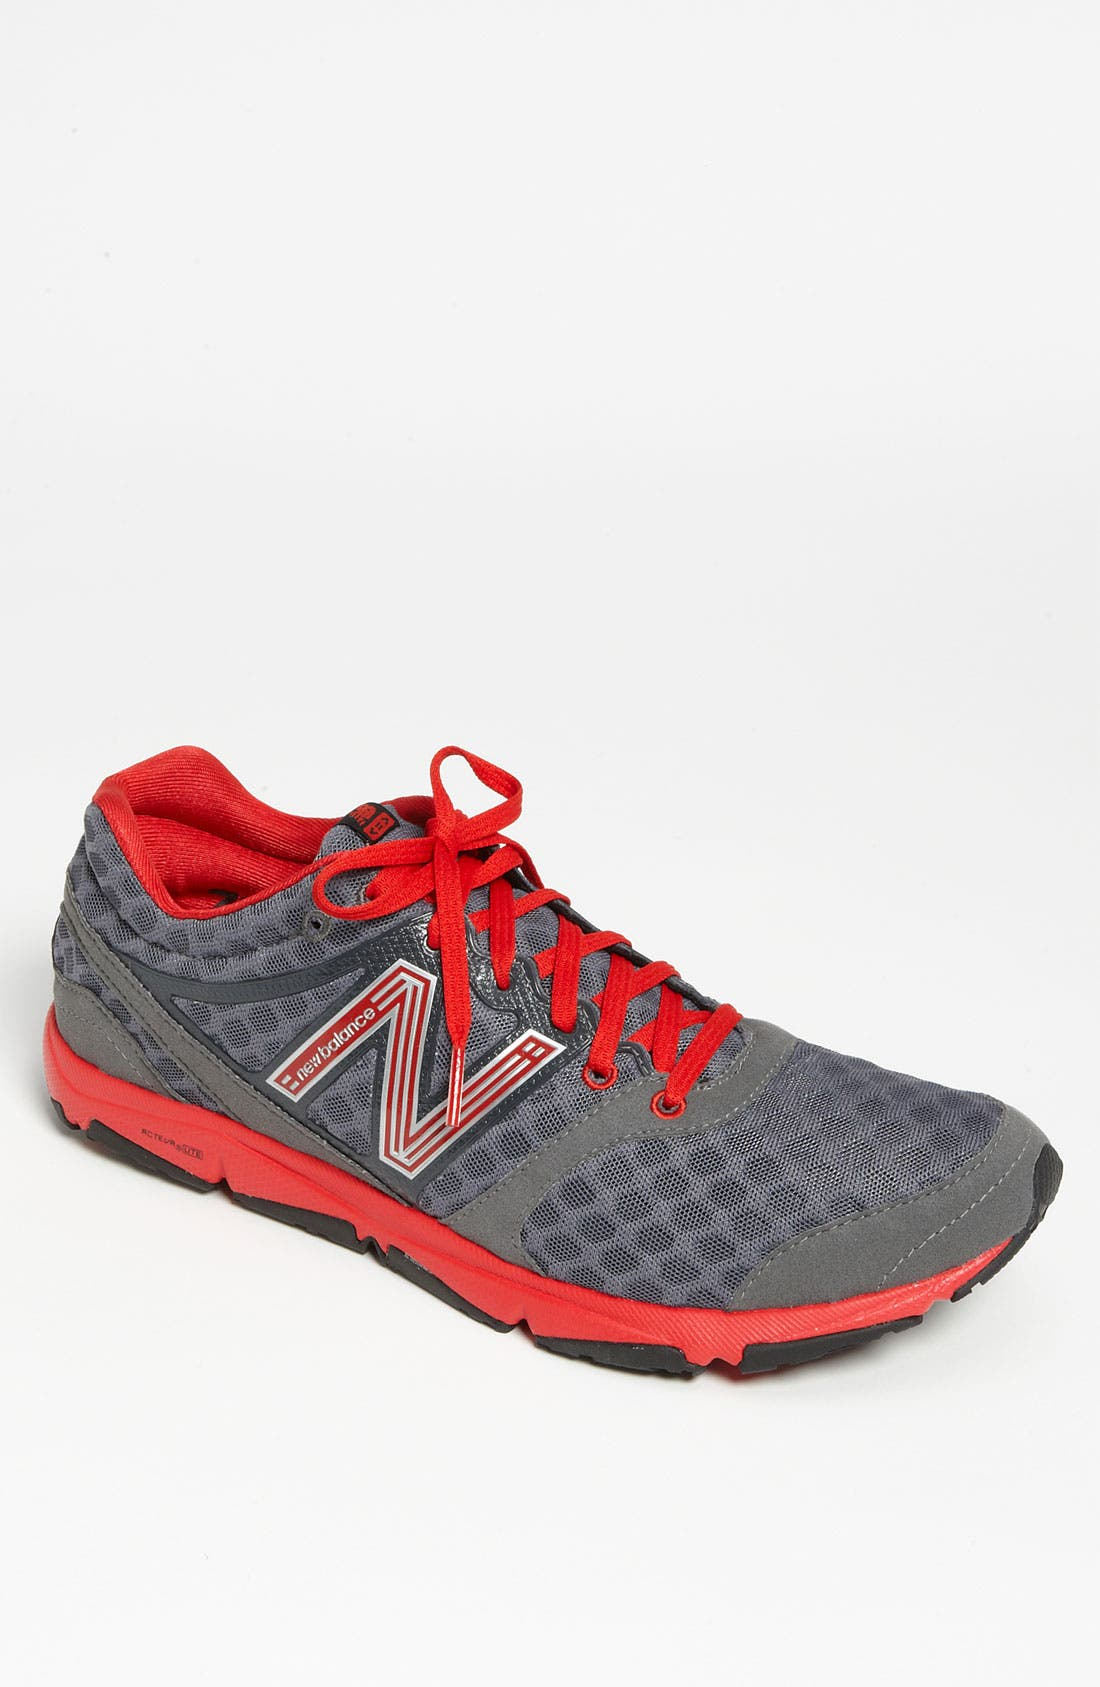 Alternate Image 1 Selected - New Balance '730' Running Shoe (Men)